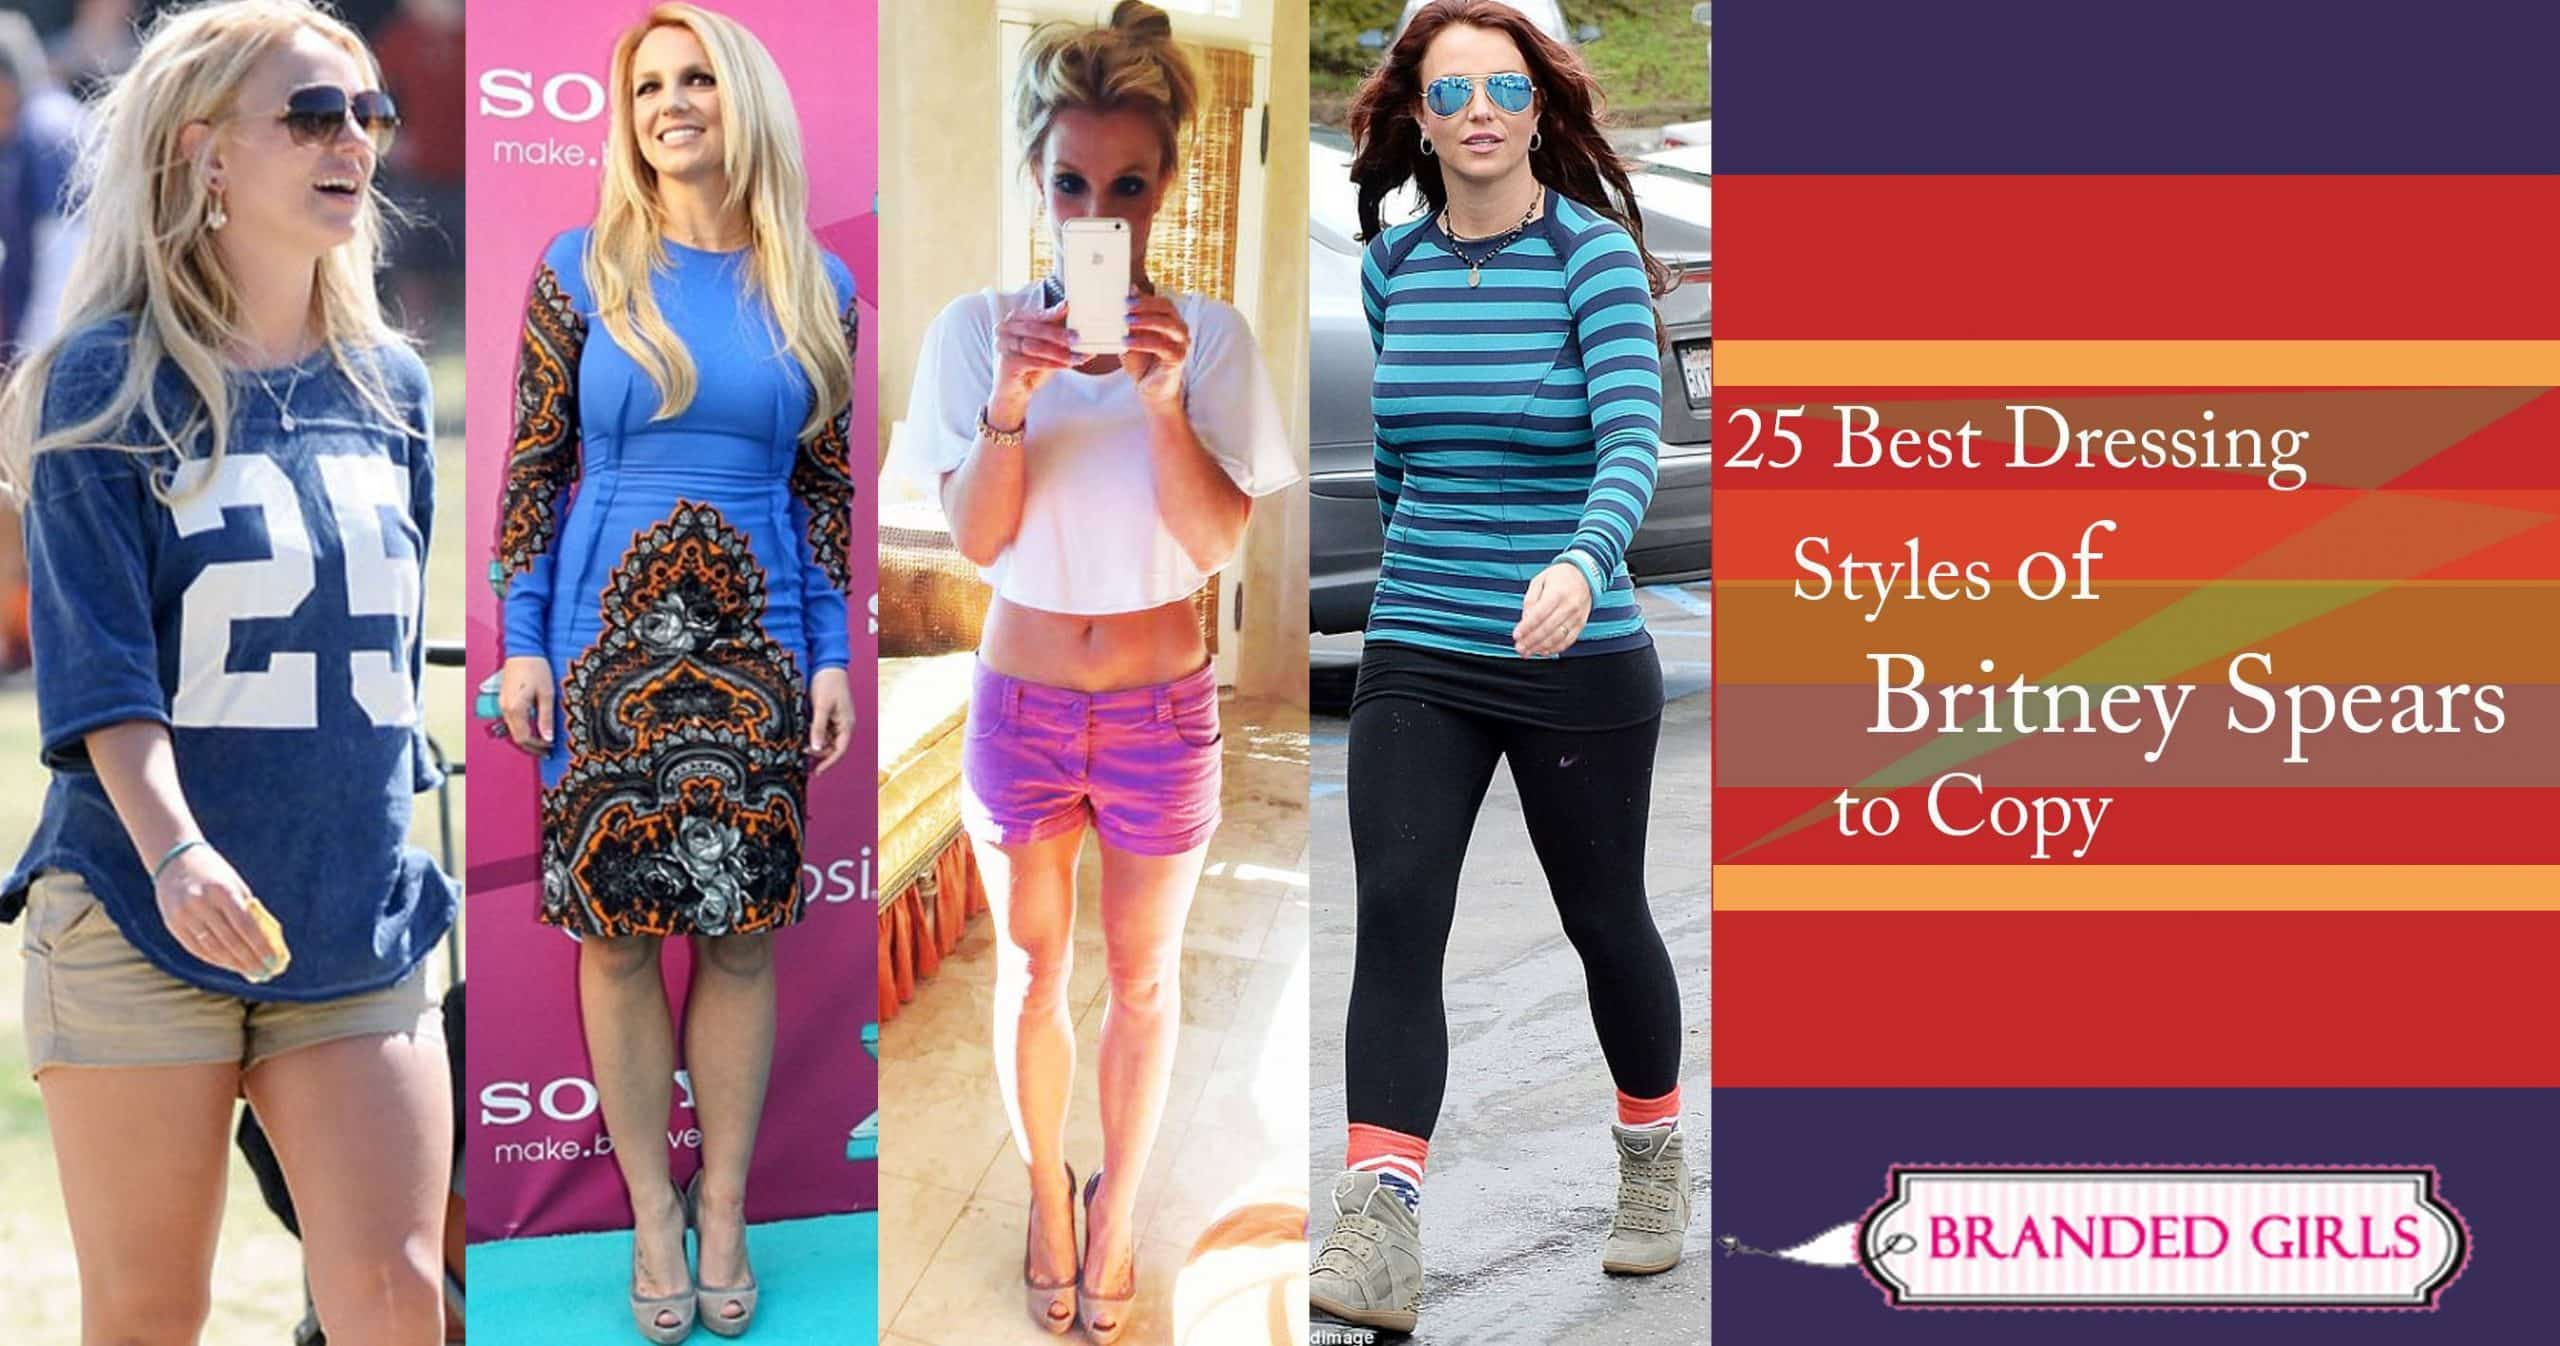 Britney Spears Outfits25 Best Dressing Styles of Britney to Copy